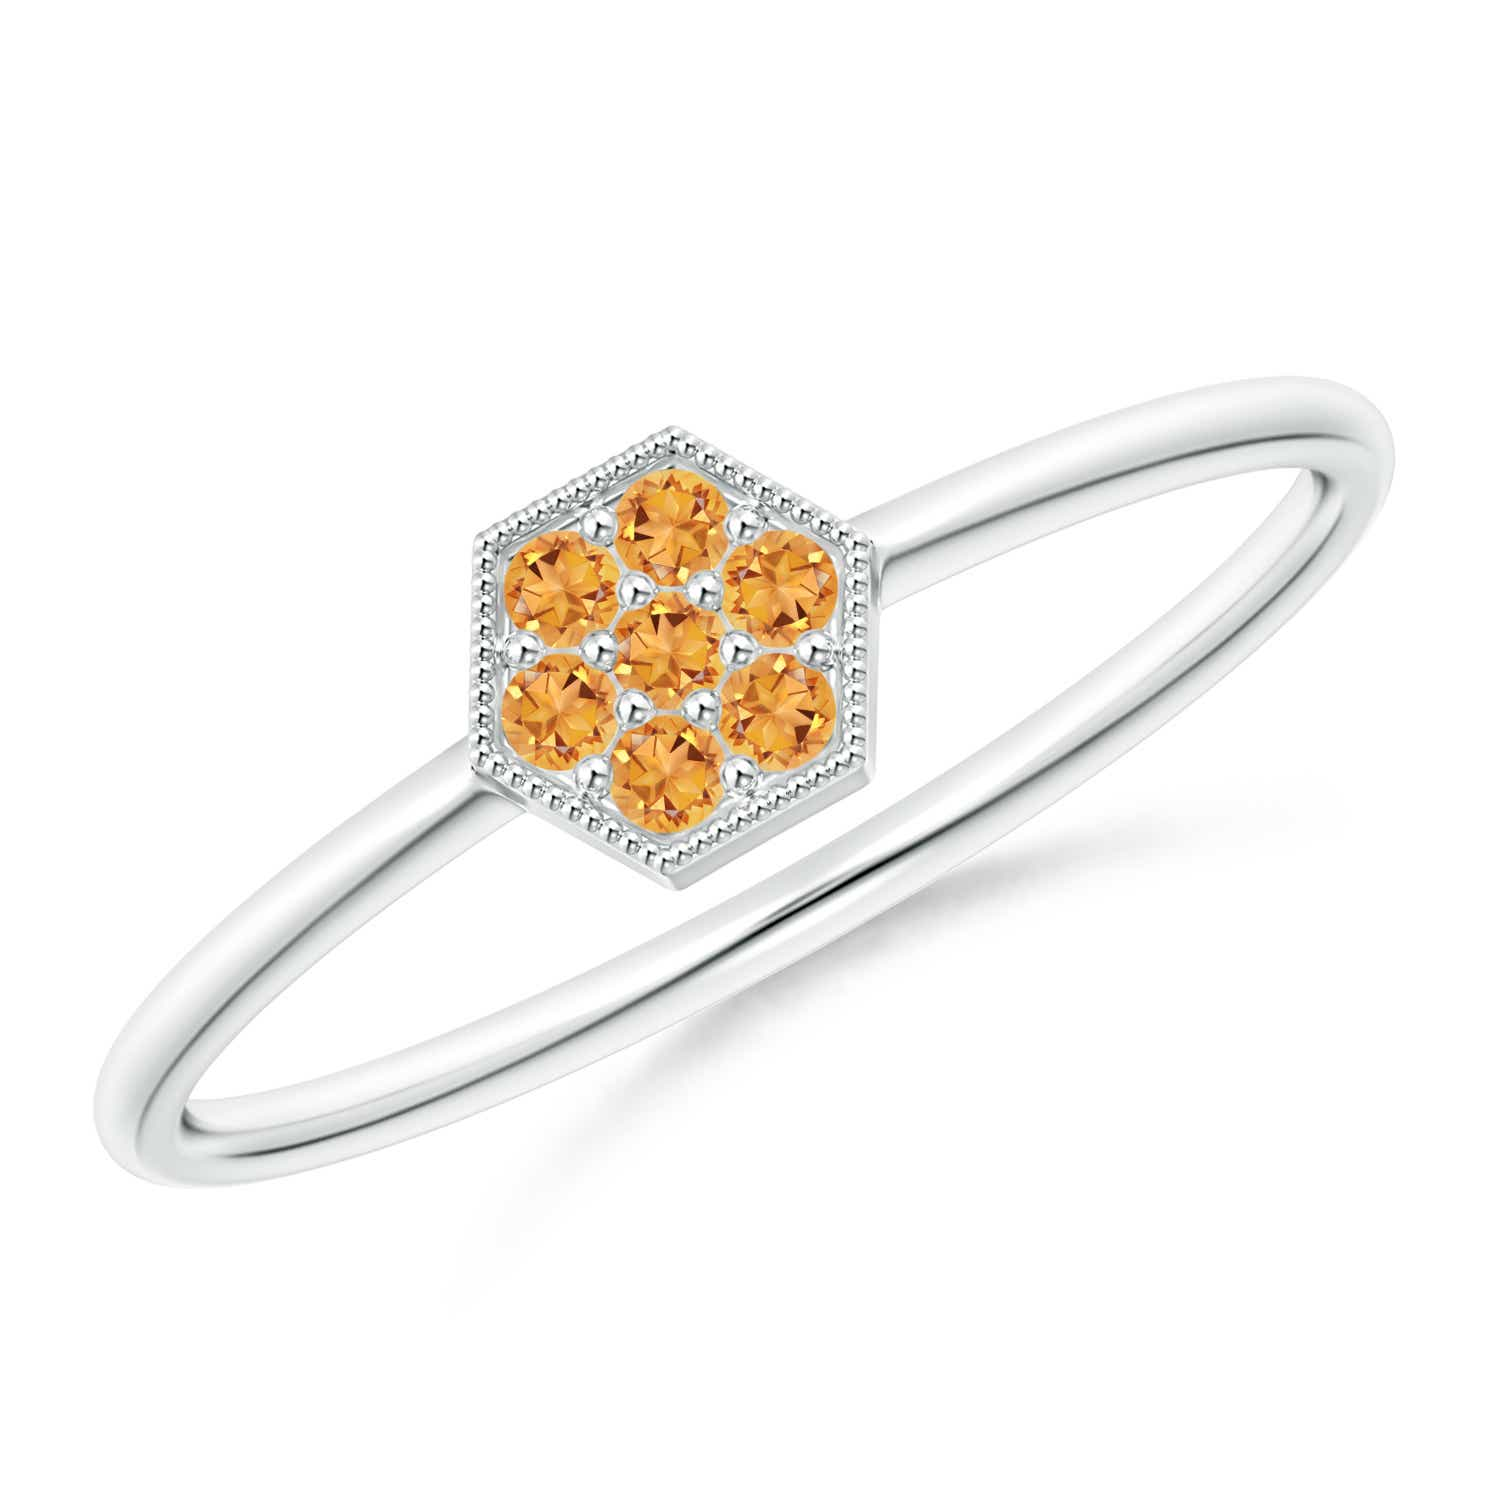 Angara Natural Citrine Ring in White Gold jUHwlb8